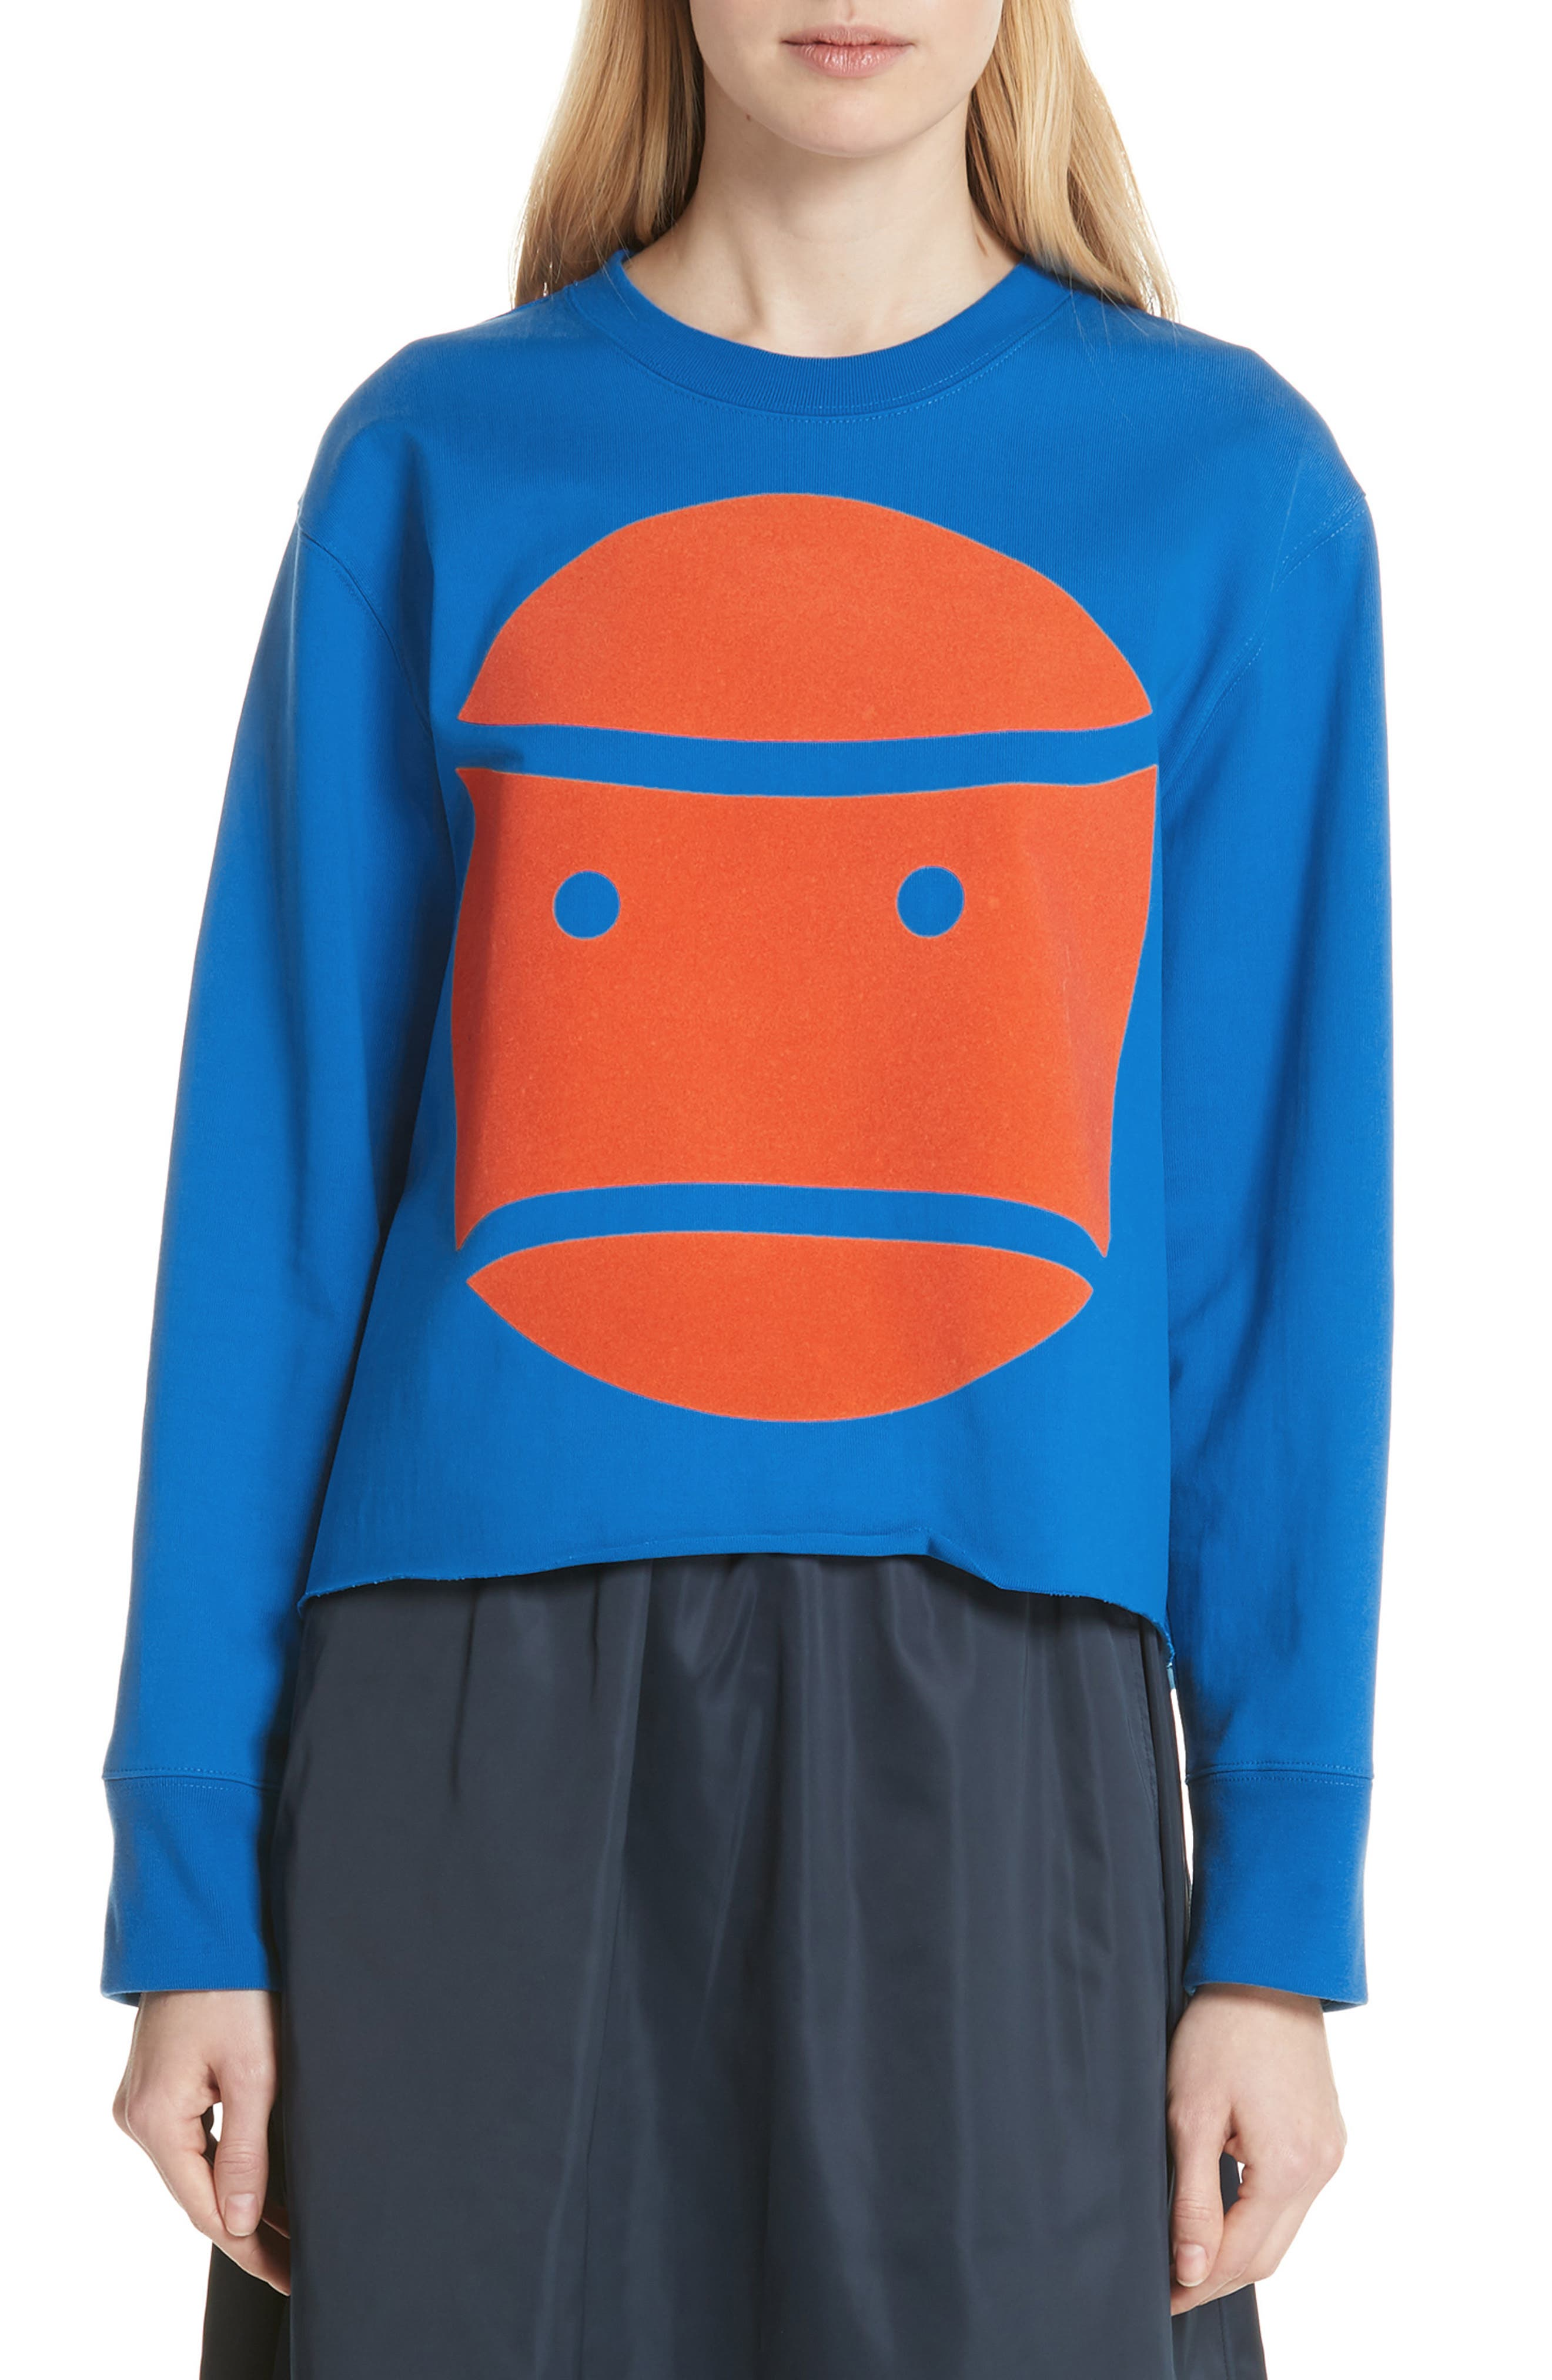 Grumps Cropped Graphic Jersey Top in Galleria Blue